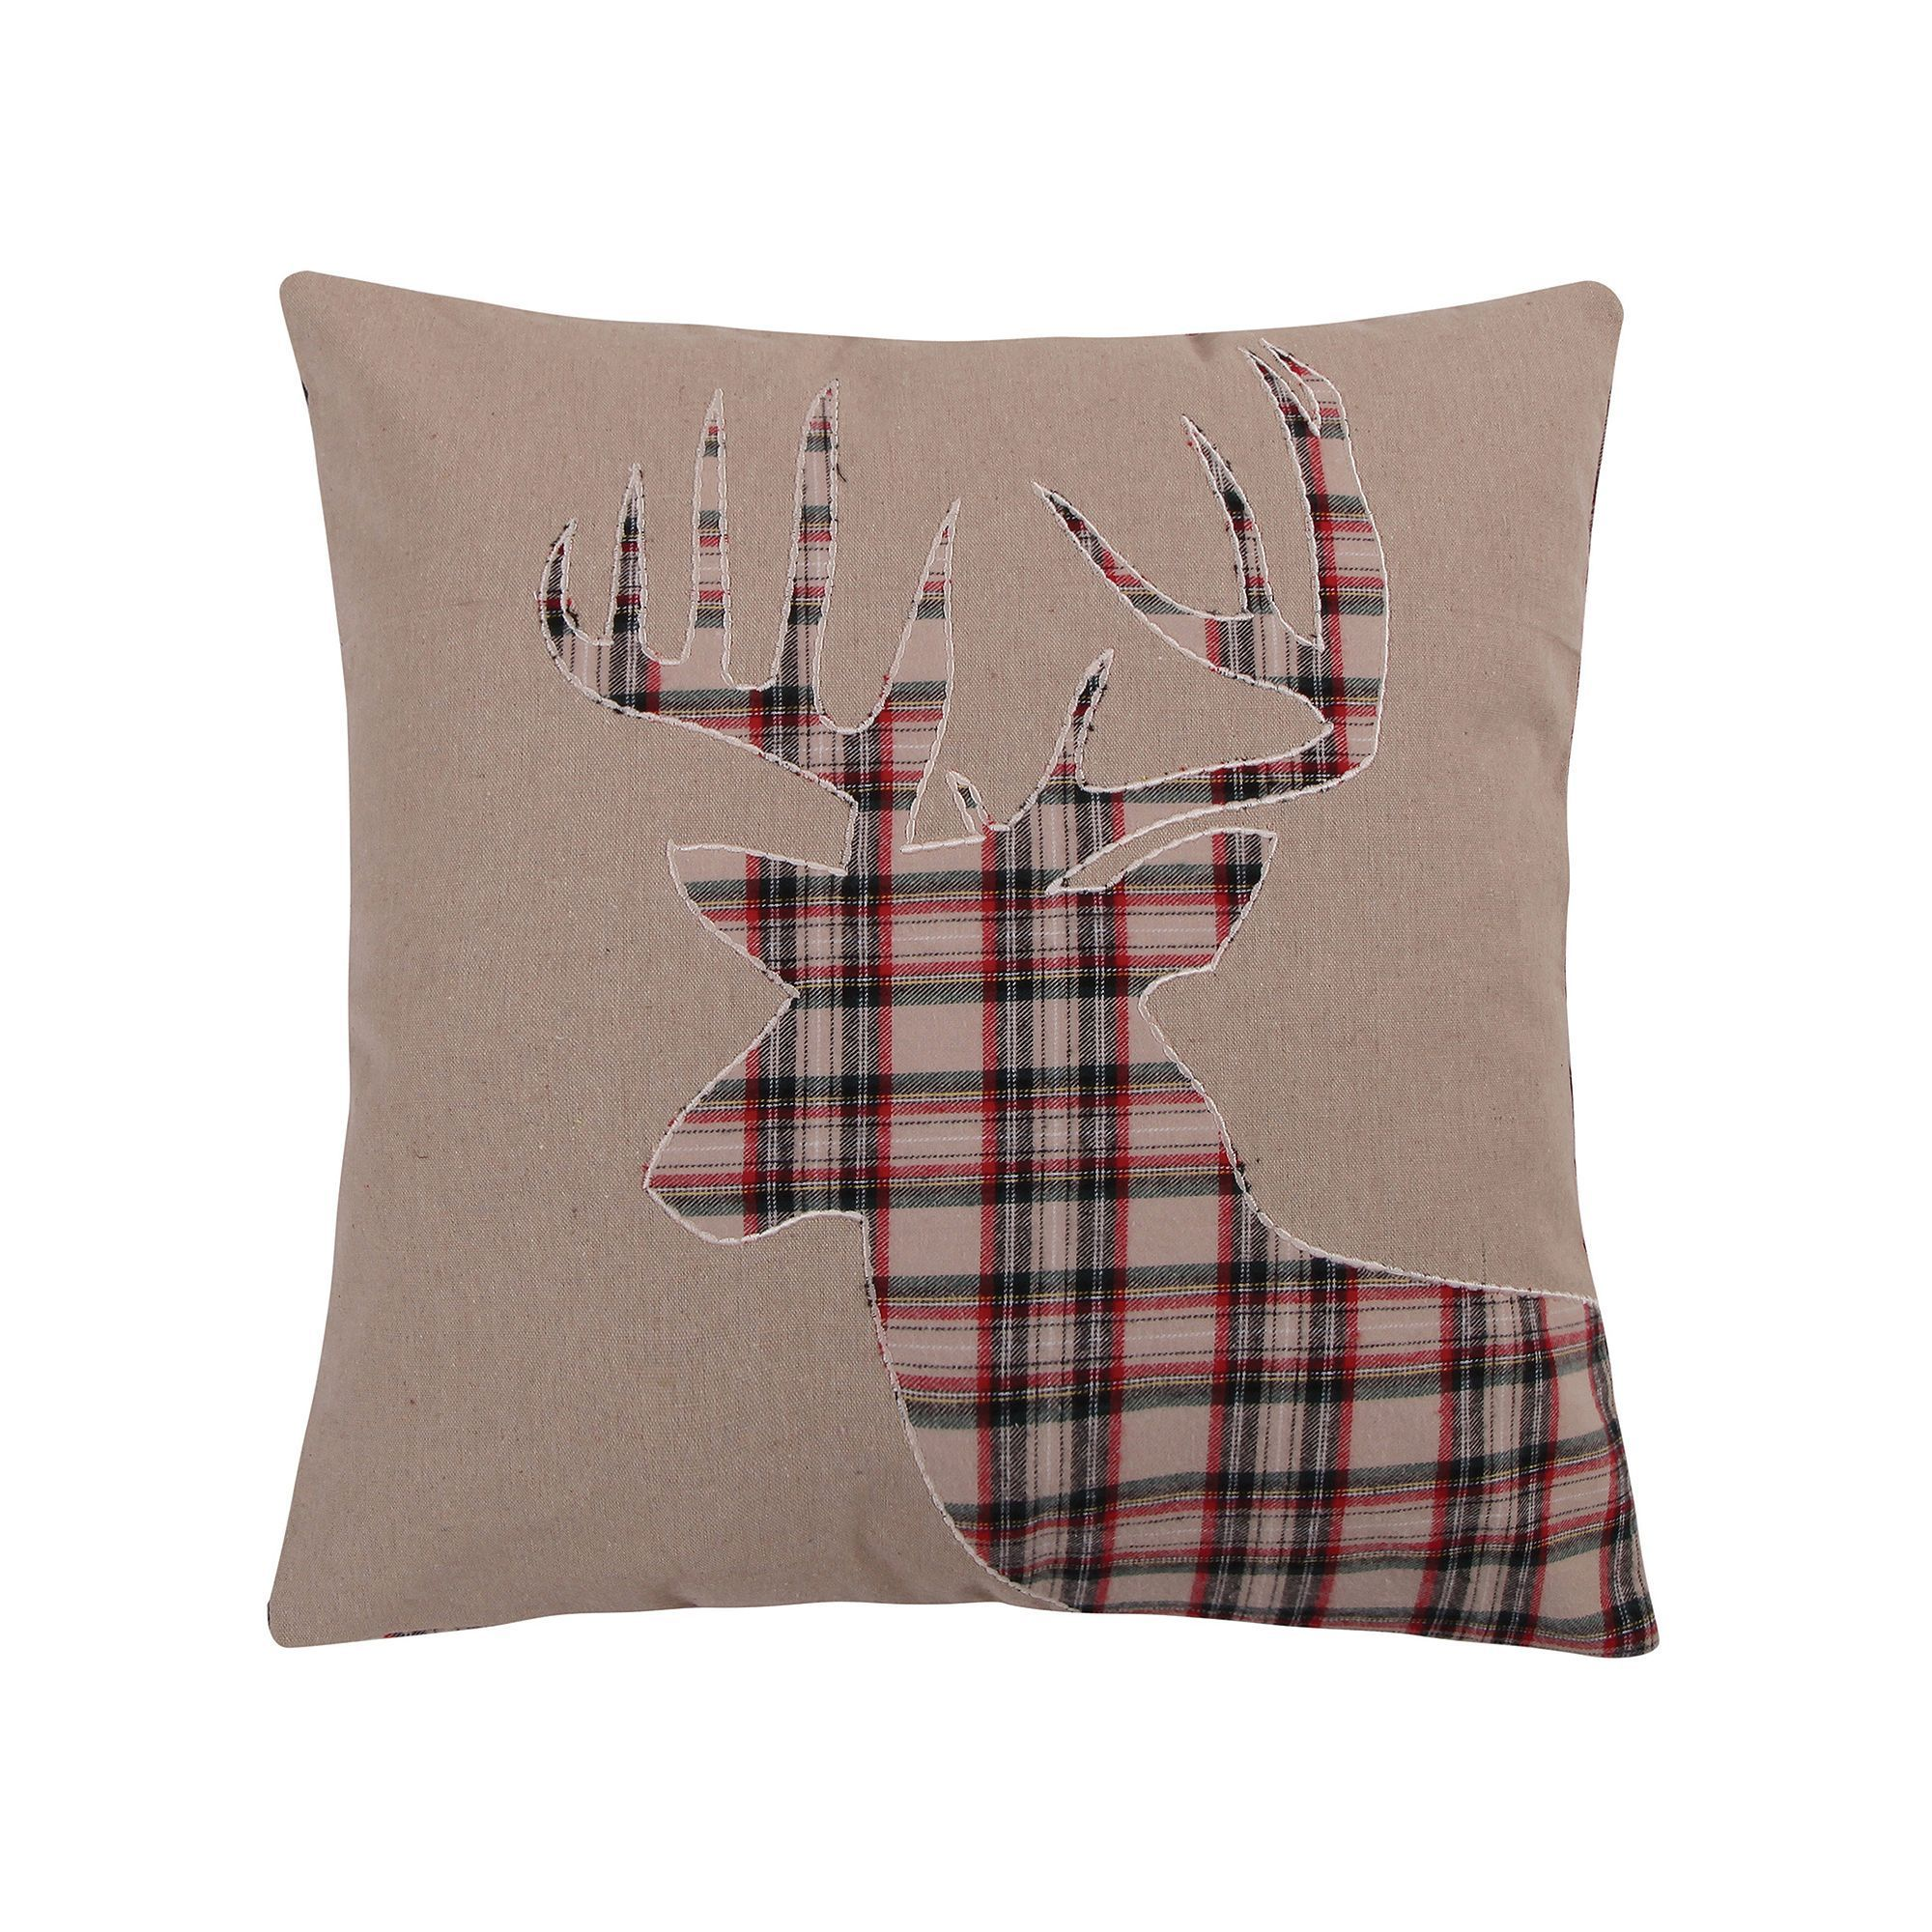 collectibles pillow more embroidered f hand sale id throws velvet black for furniture handmade textiles hunting in pillows master forest cushion at deer throw red scene with